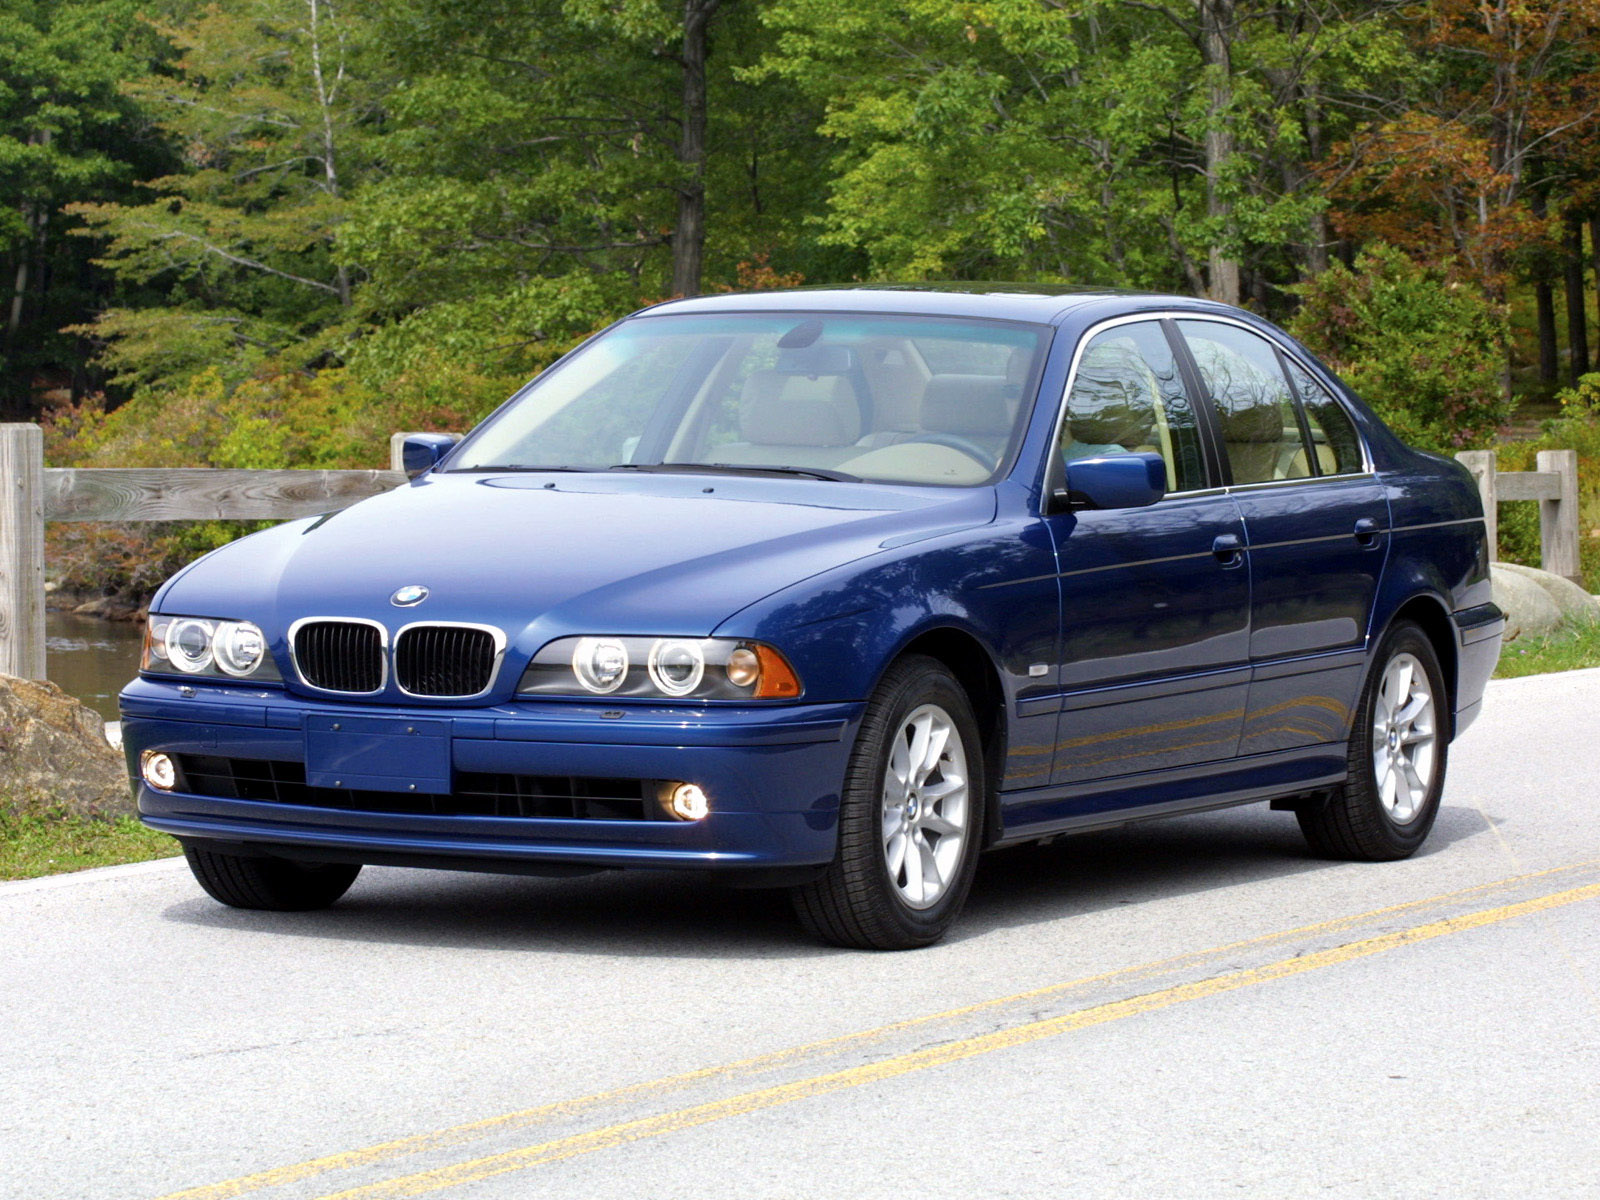 BMW 5 series 540i 1996 photo - 2